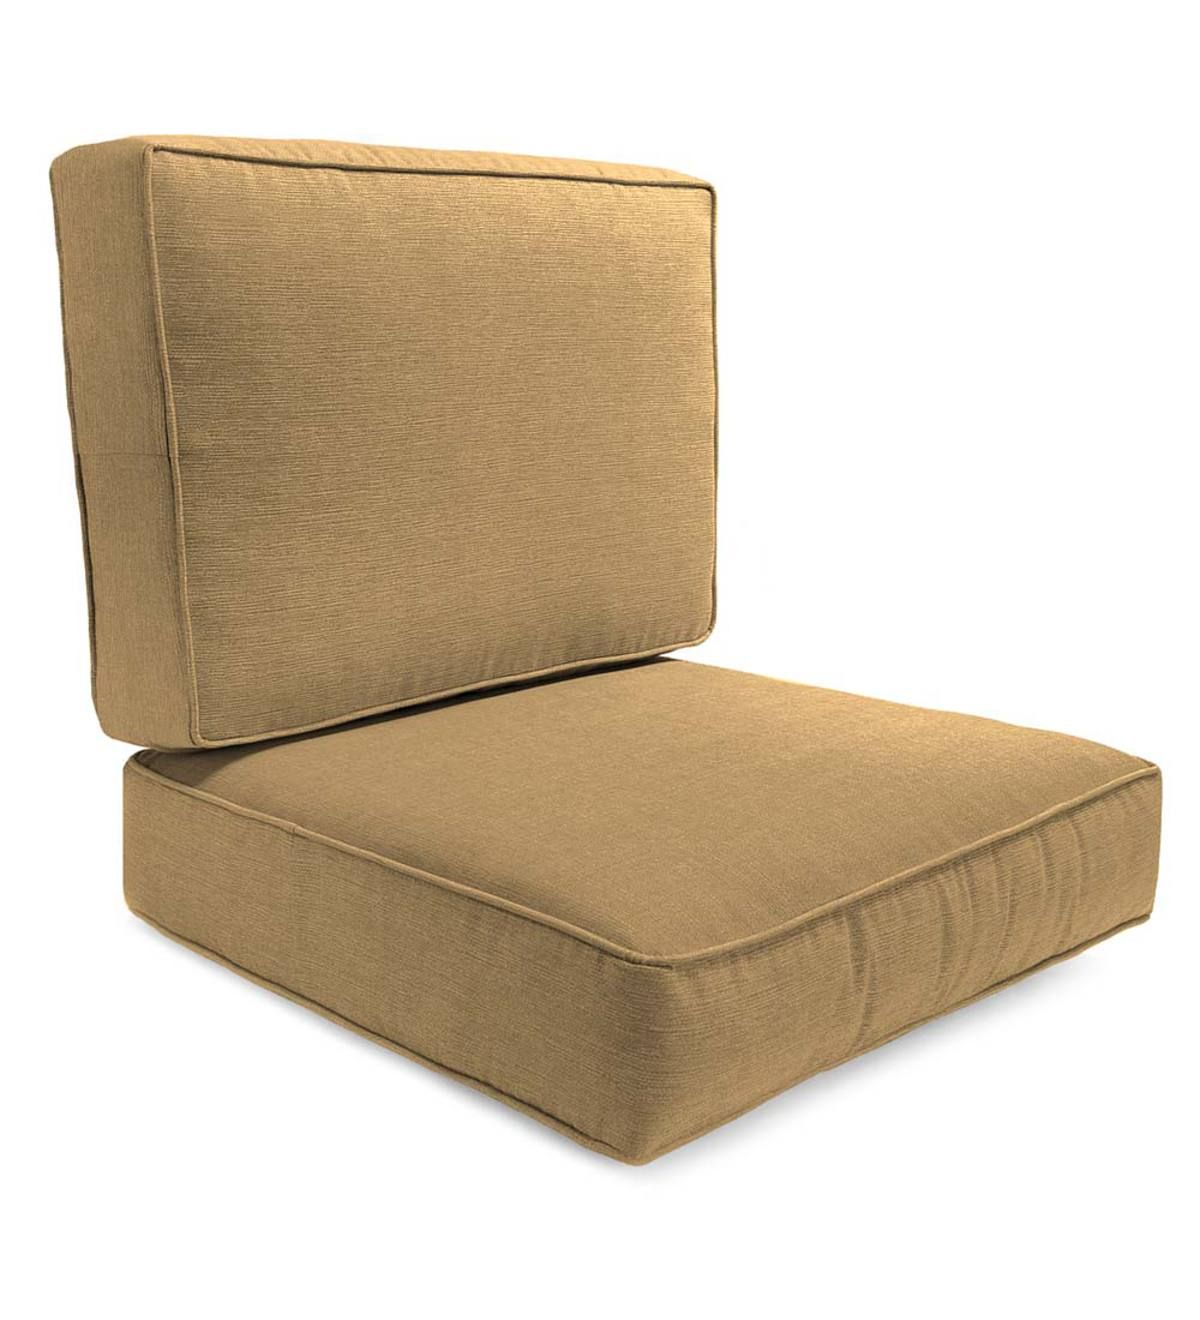 Box Edge Polyester Replacement Chair Cushion Claremont Seating Replacement Chair Cushions Outdoor Furniture Cushions Chair Cushions